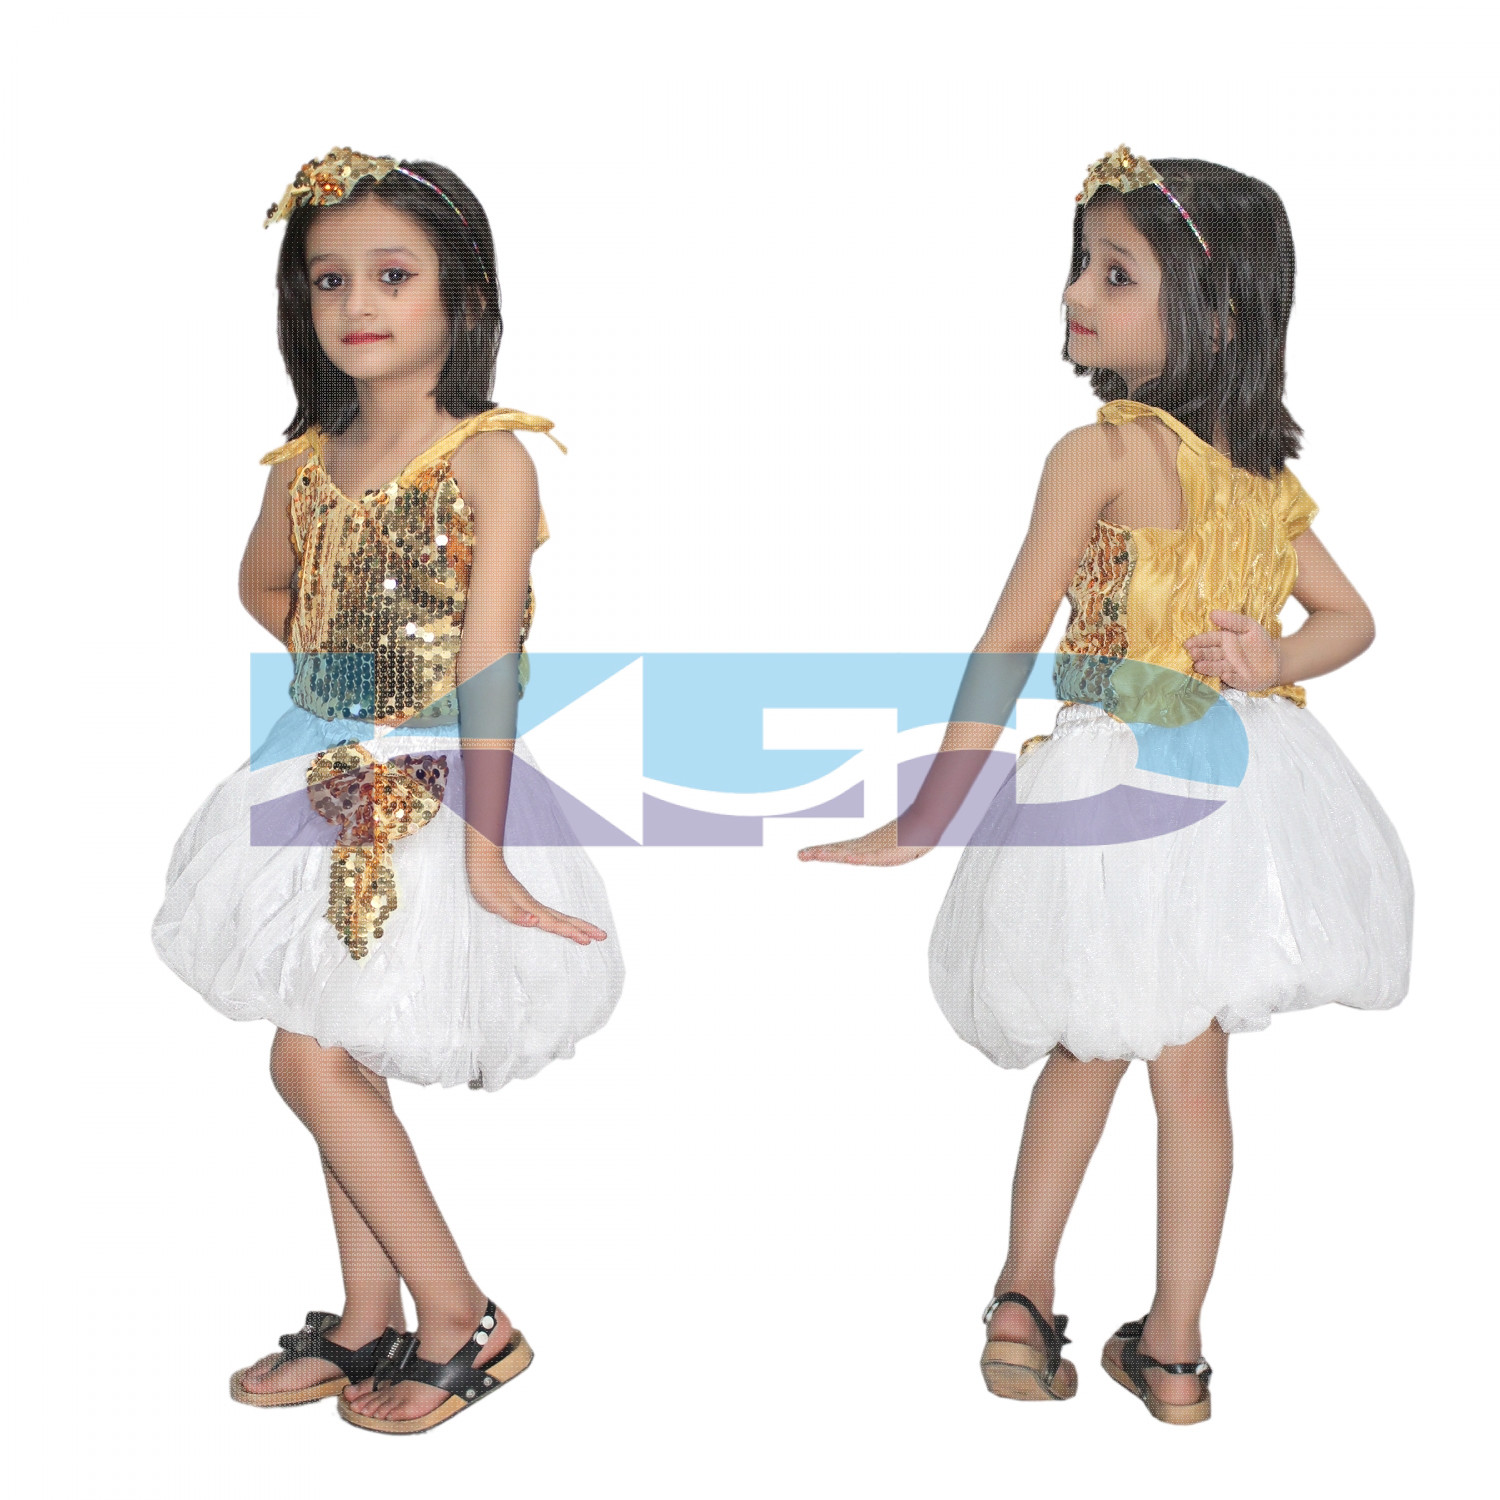 Golden Silver Skirt Top Set Western Dance Dress For kids,Costume For School Annual function/Theme Party/Competition/Stage Shows Dress/Birthday Party Dress